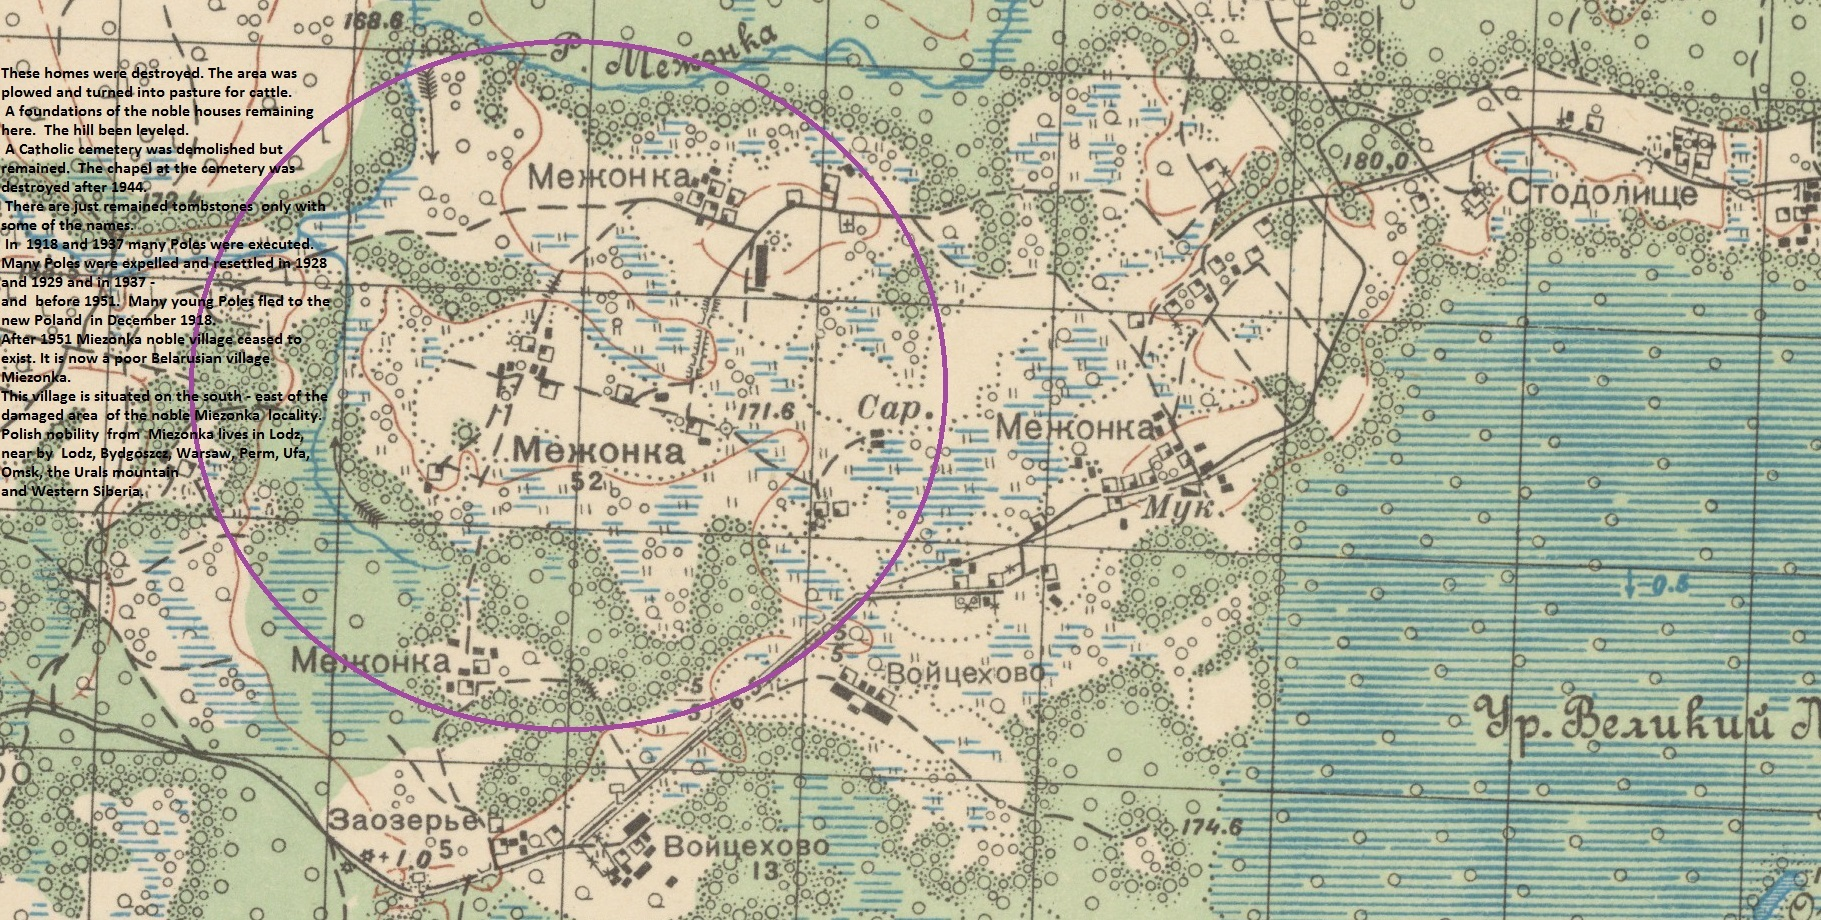 Miezonka noble village, ca 1800 - before 1951  and destroyed 1937 / 1951.  History and genealogy of the Constantinovich family with relatives: Troubetzkoy, Sedykh from Kazan, and Kalinowski from Cracow, Armand in Moscow and Petersburg, Gernet from Estonia, Dunkel / Tunkel, 